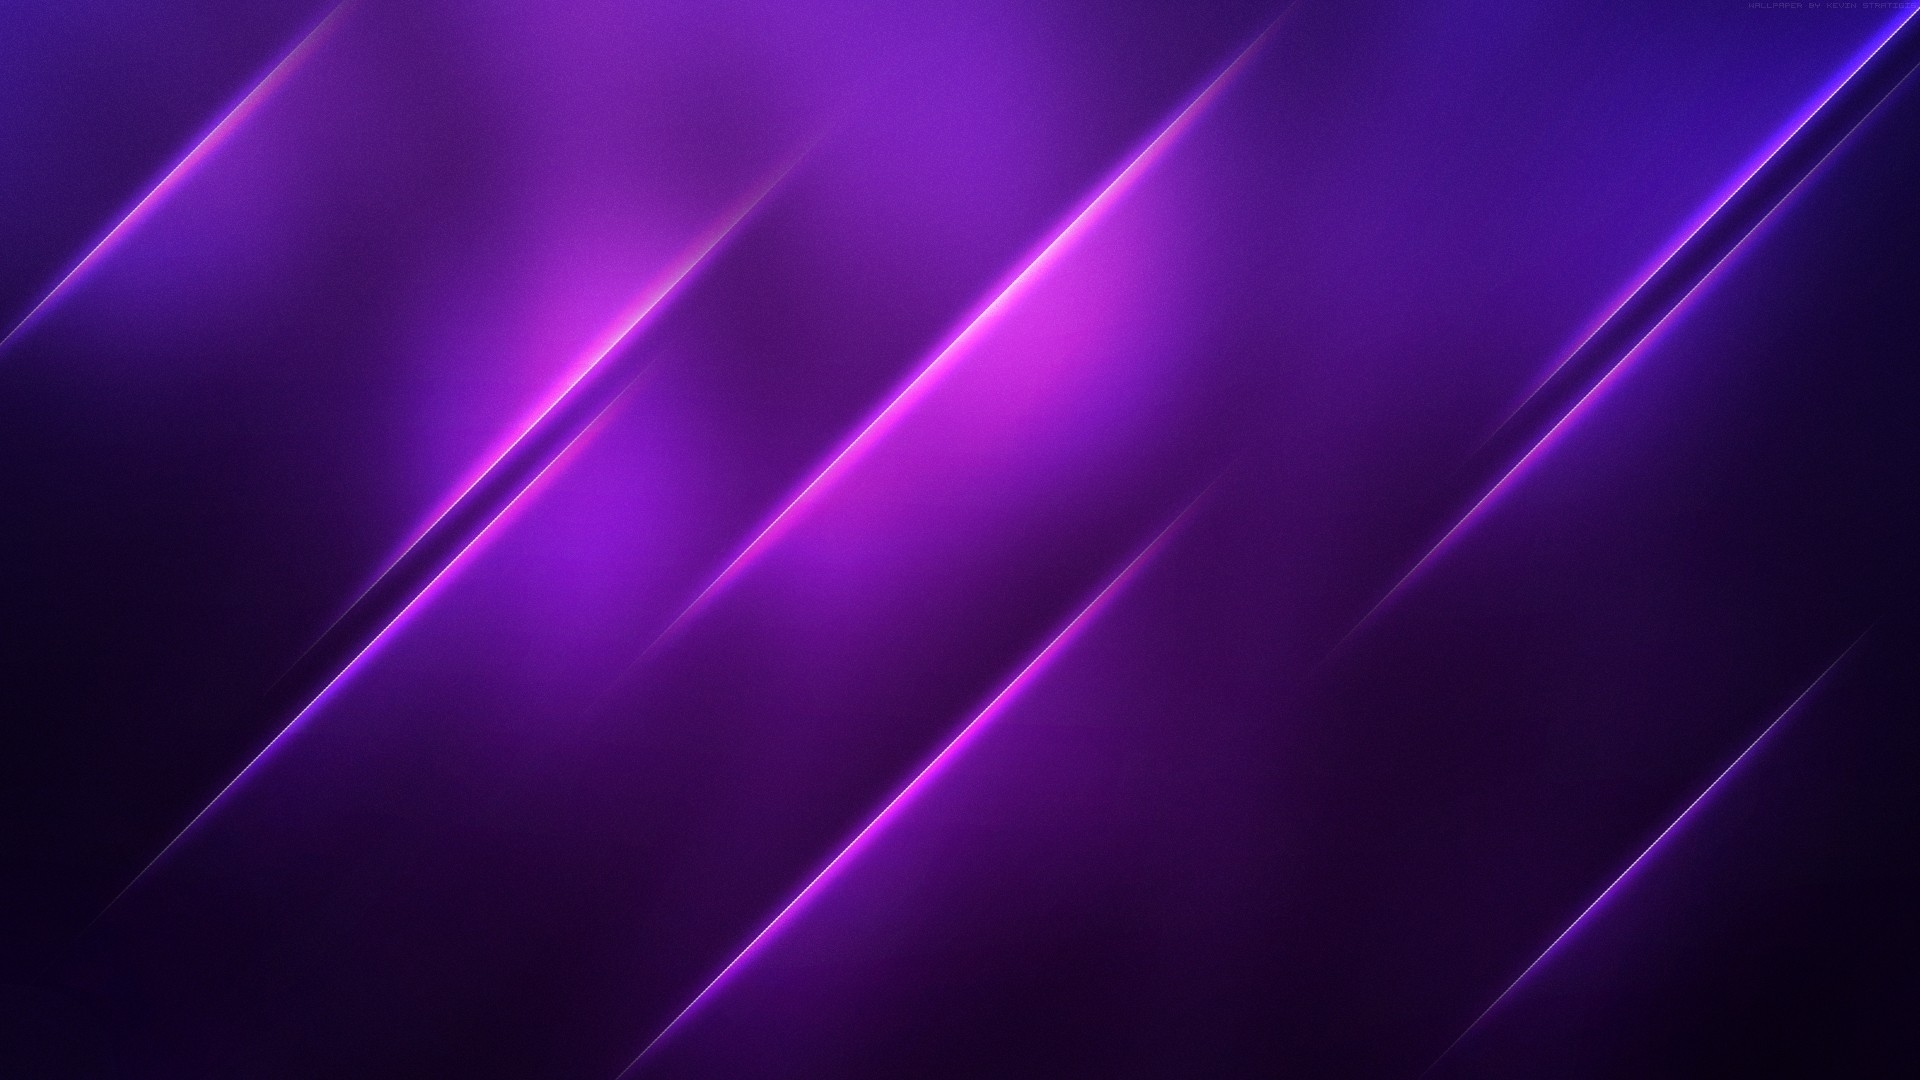 15 Stunning HD Purple Wallpapers